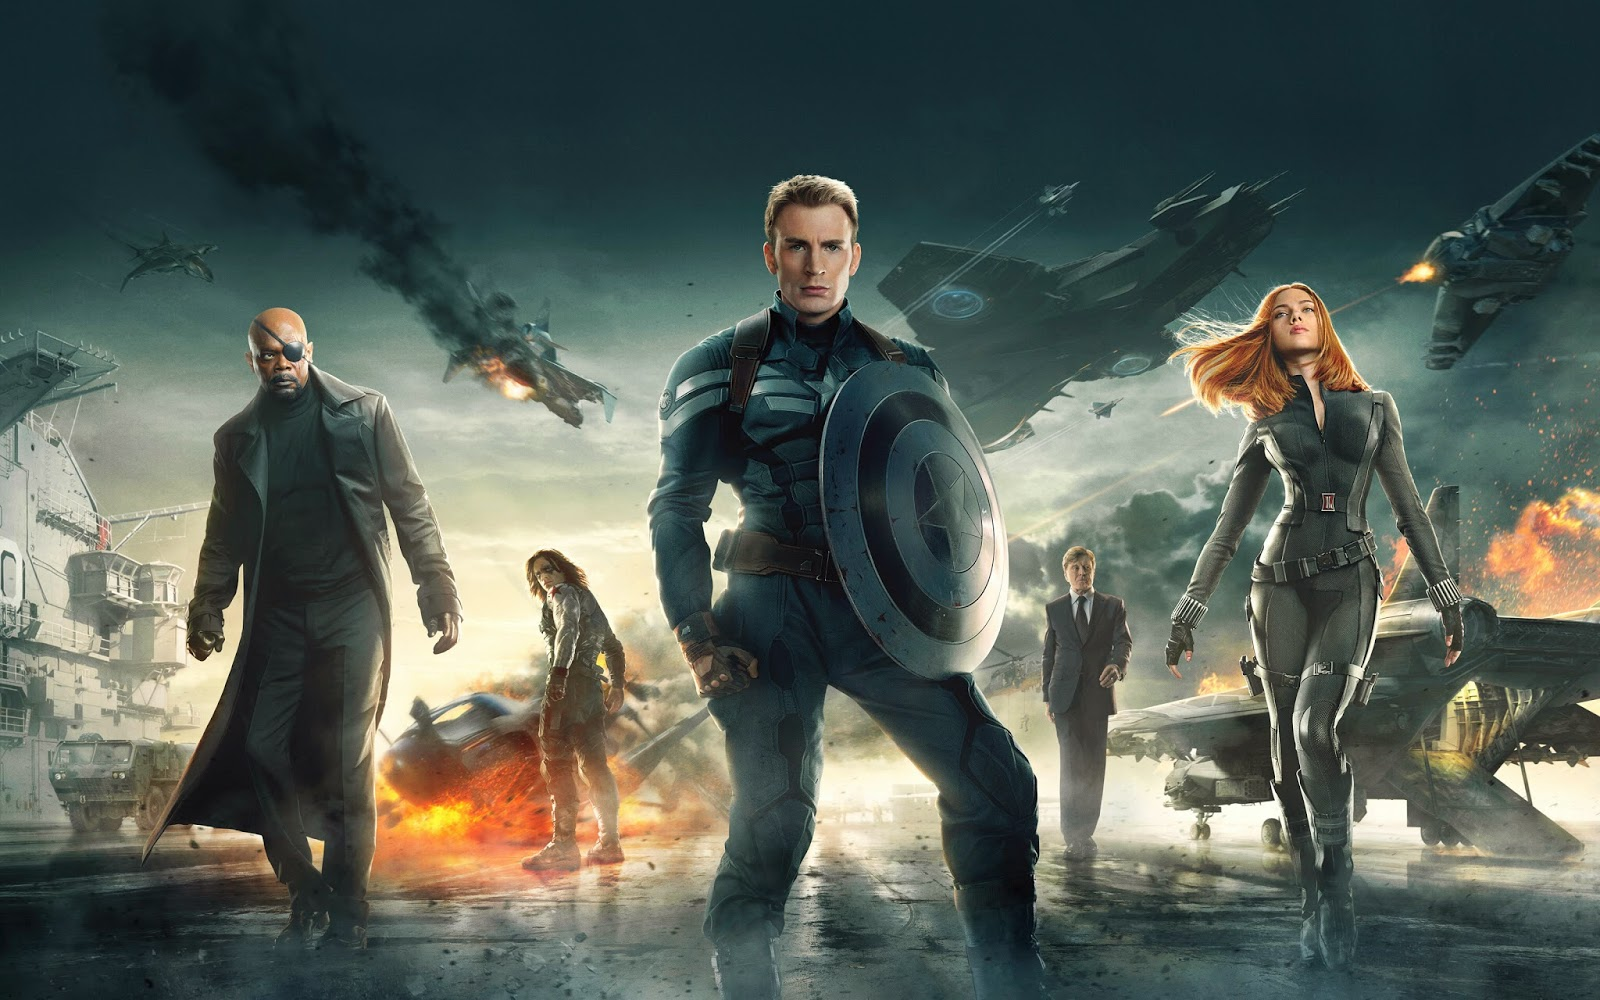 Captain america the winter soldier full movie watch online free hd